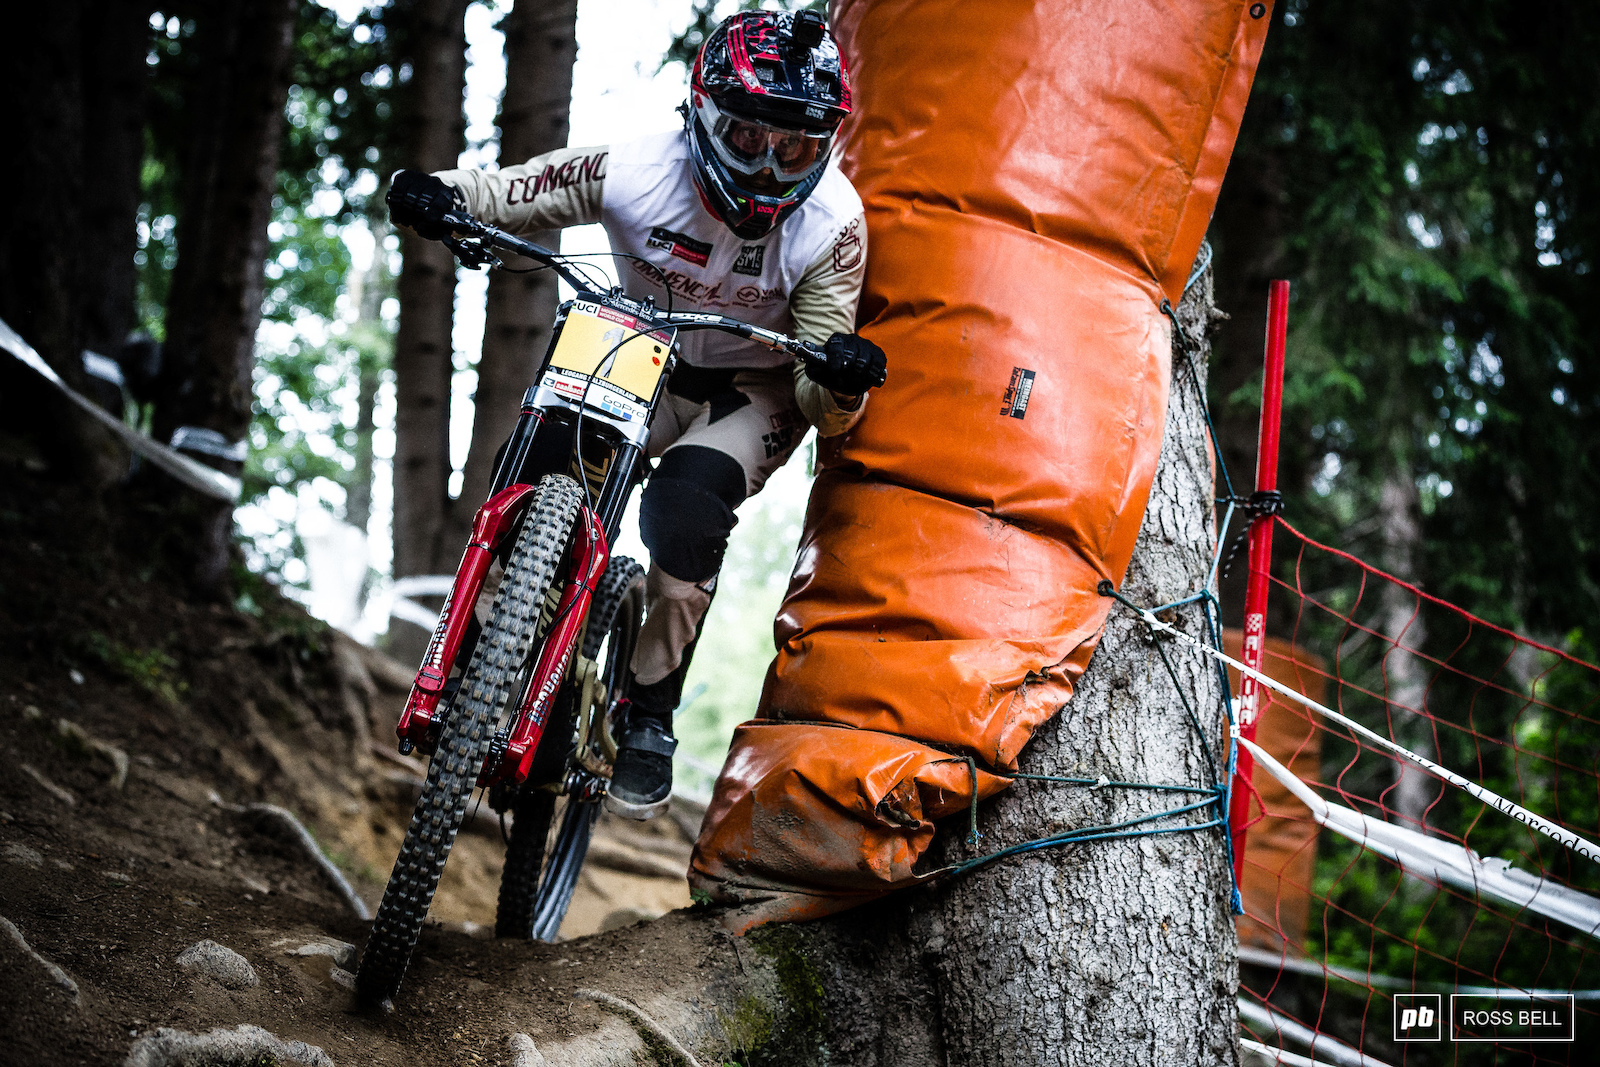 Thibaut Daprela making space where there is none on his way to a fastest qualifying time in juniors.